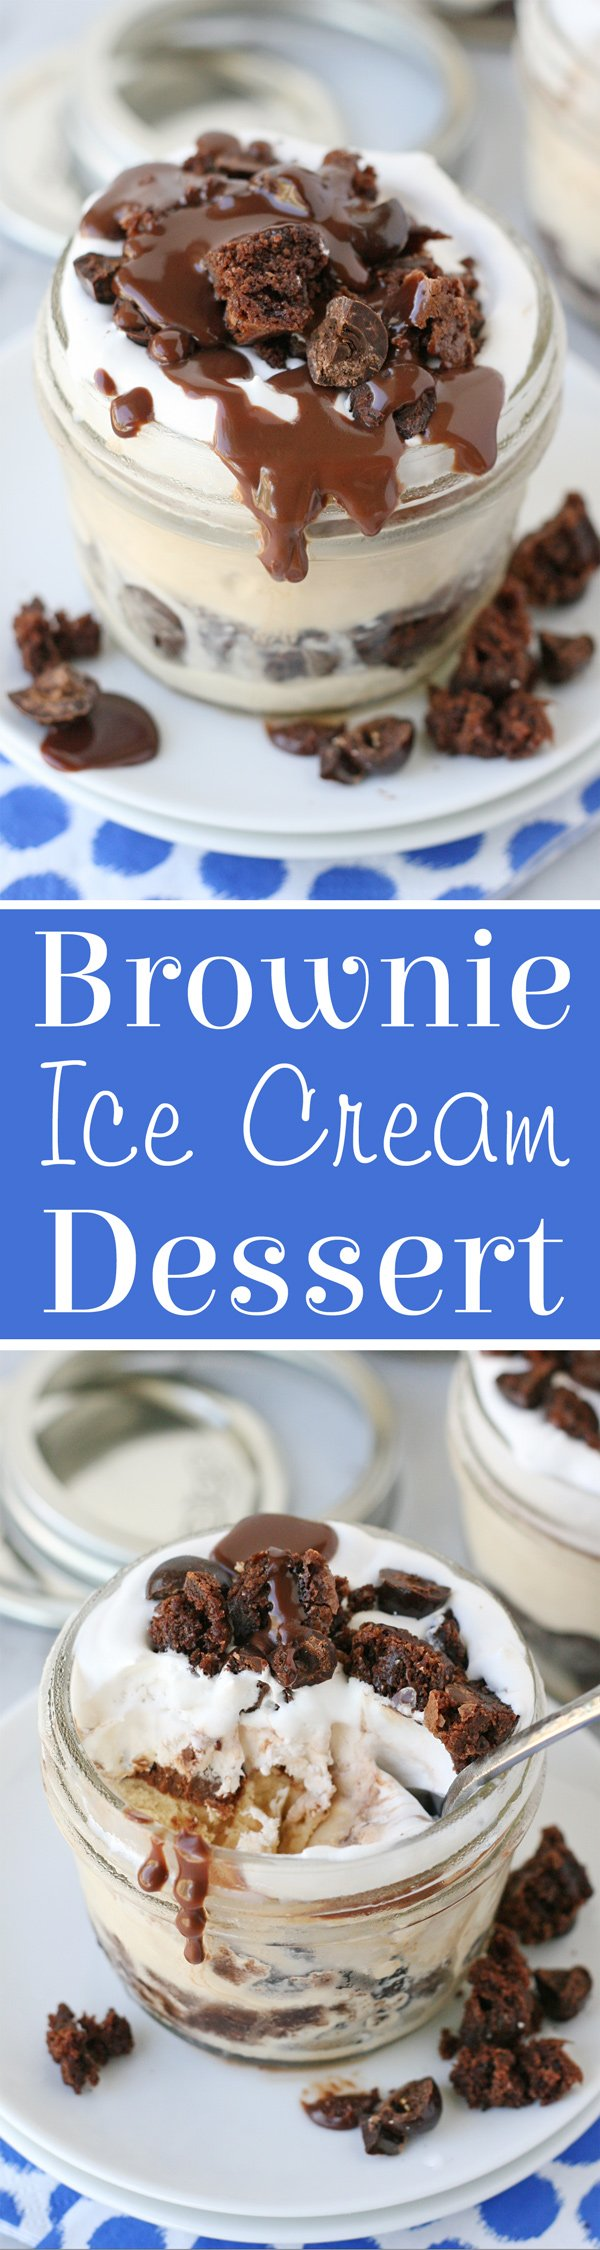 Simply incredible!! Brownie, coffee ice cream, fudge and whipped topping... this frozen treat is to die for!!